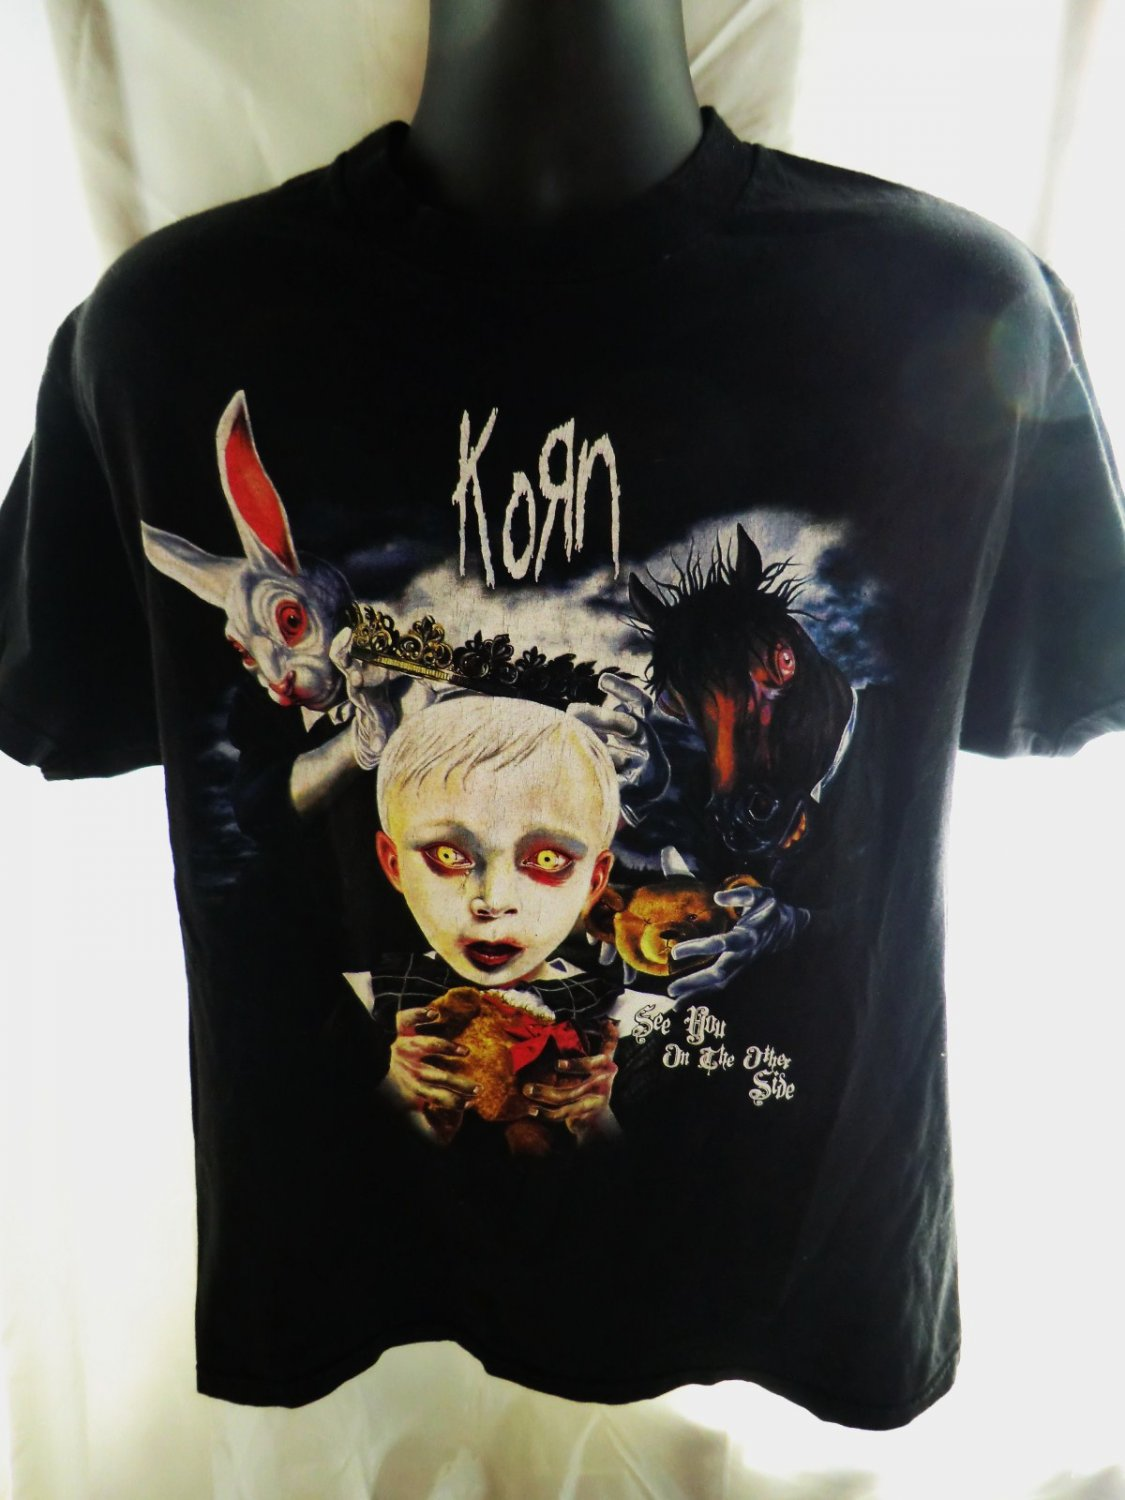 SOLD! KORN T-Shirt See You On The Other Side Size Large